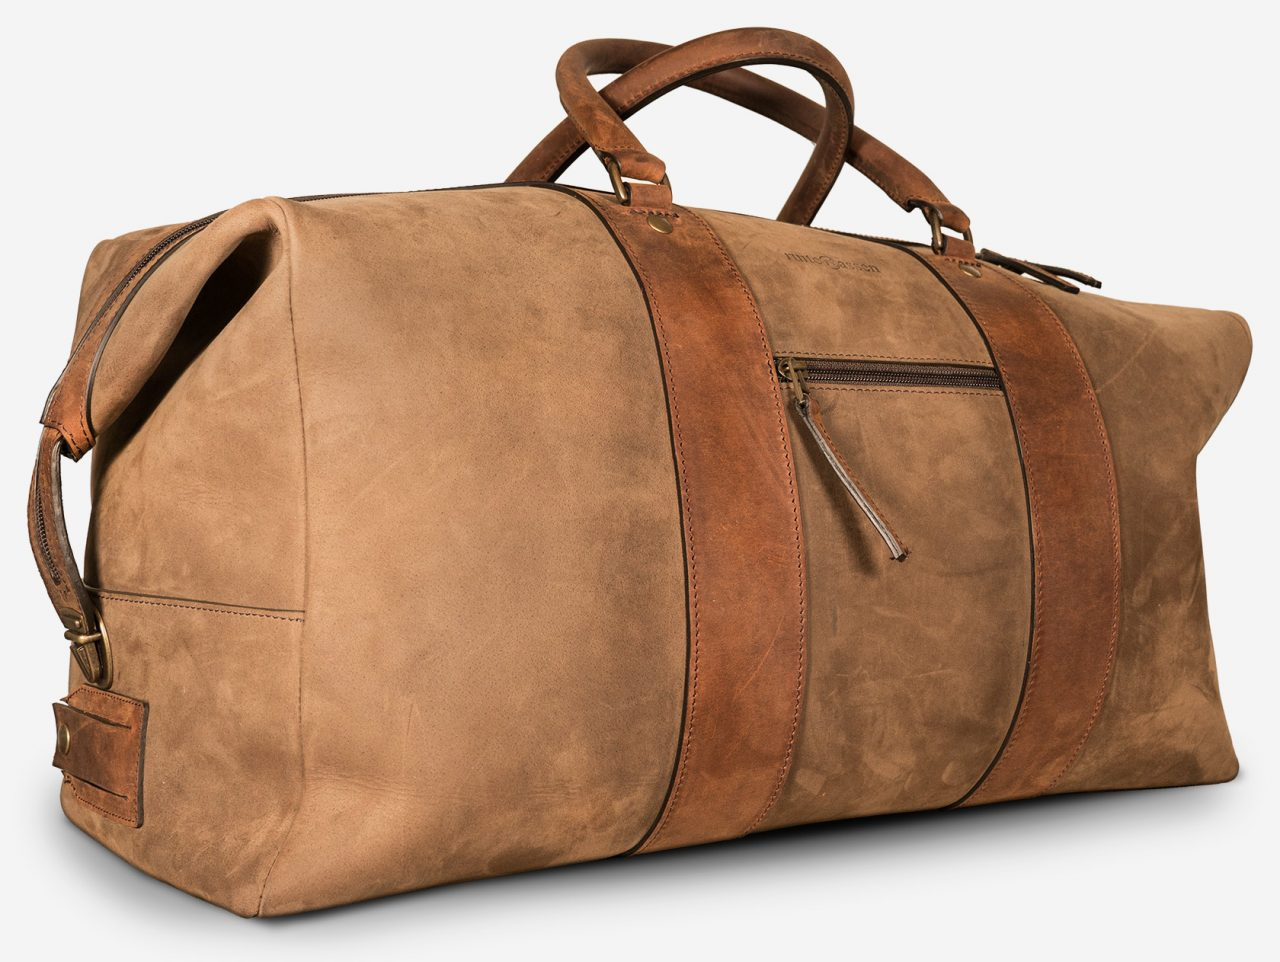 Large duffle bag made out of soft leather side view.